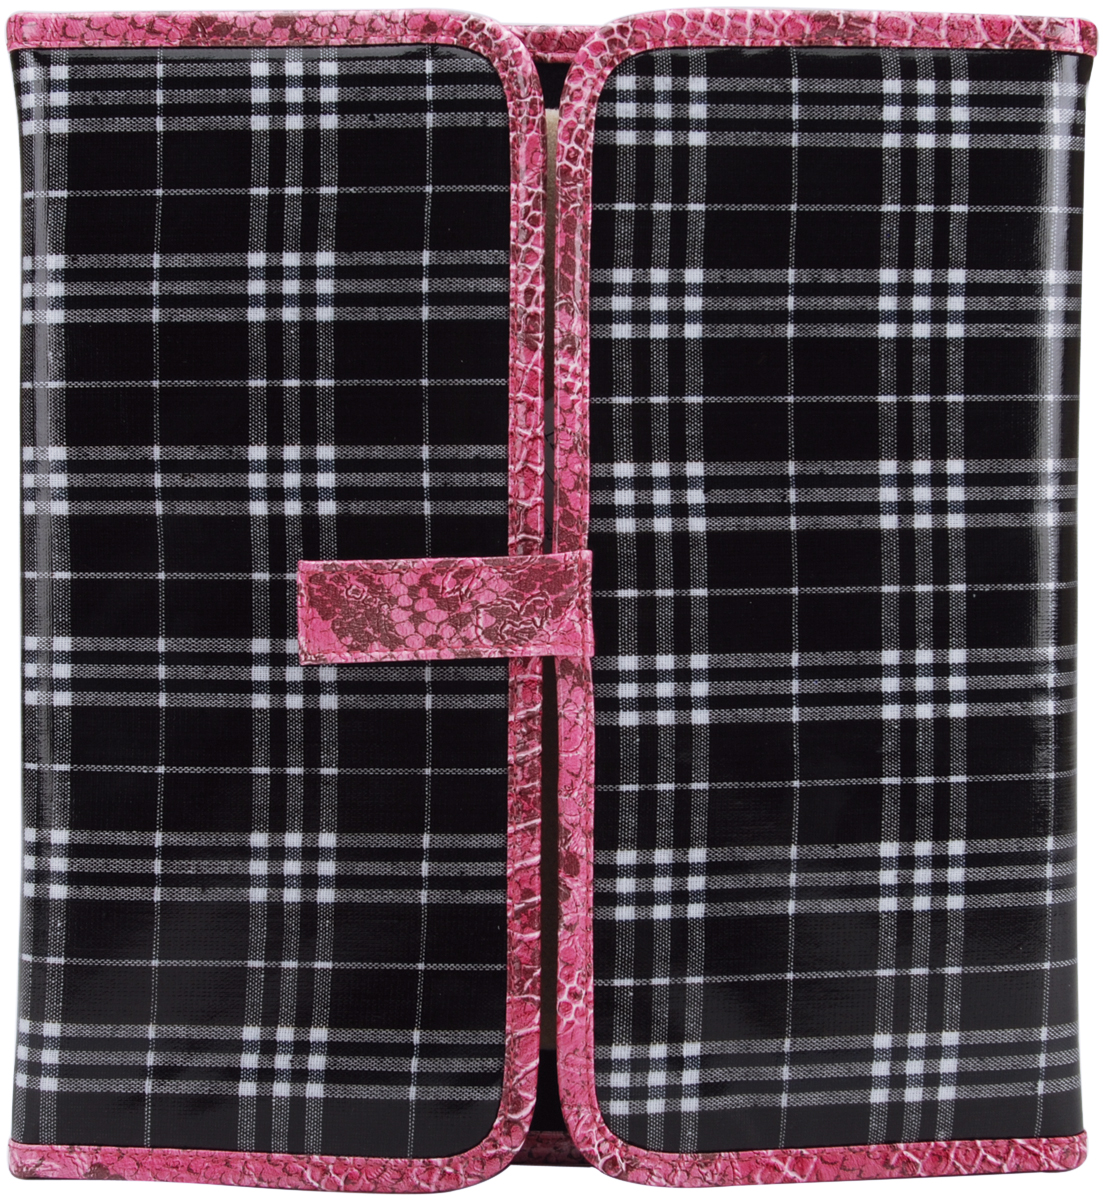 Lap Bead Case 11.5 Inch X 12 Inch X.75 Inch-Plaid